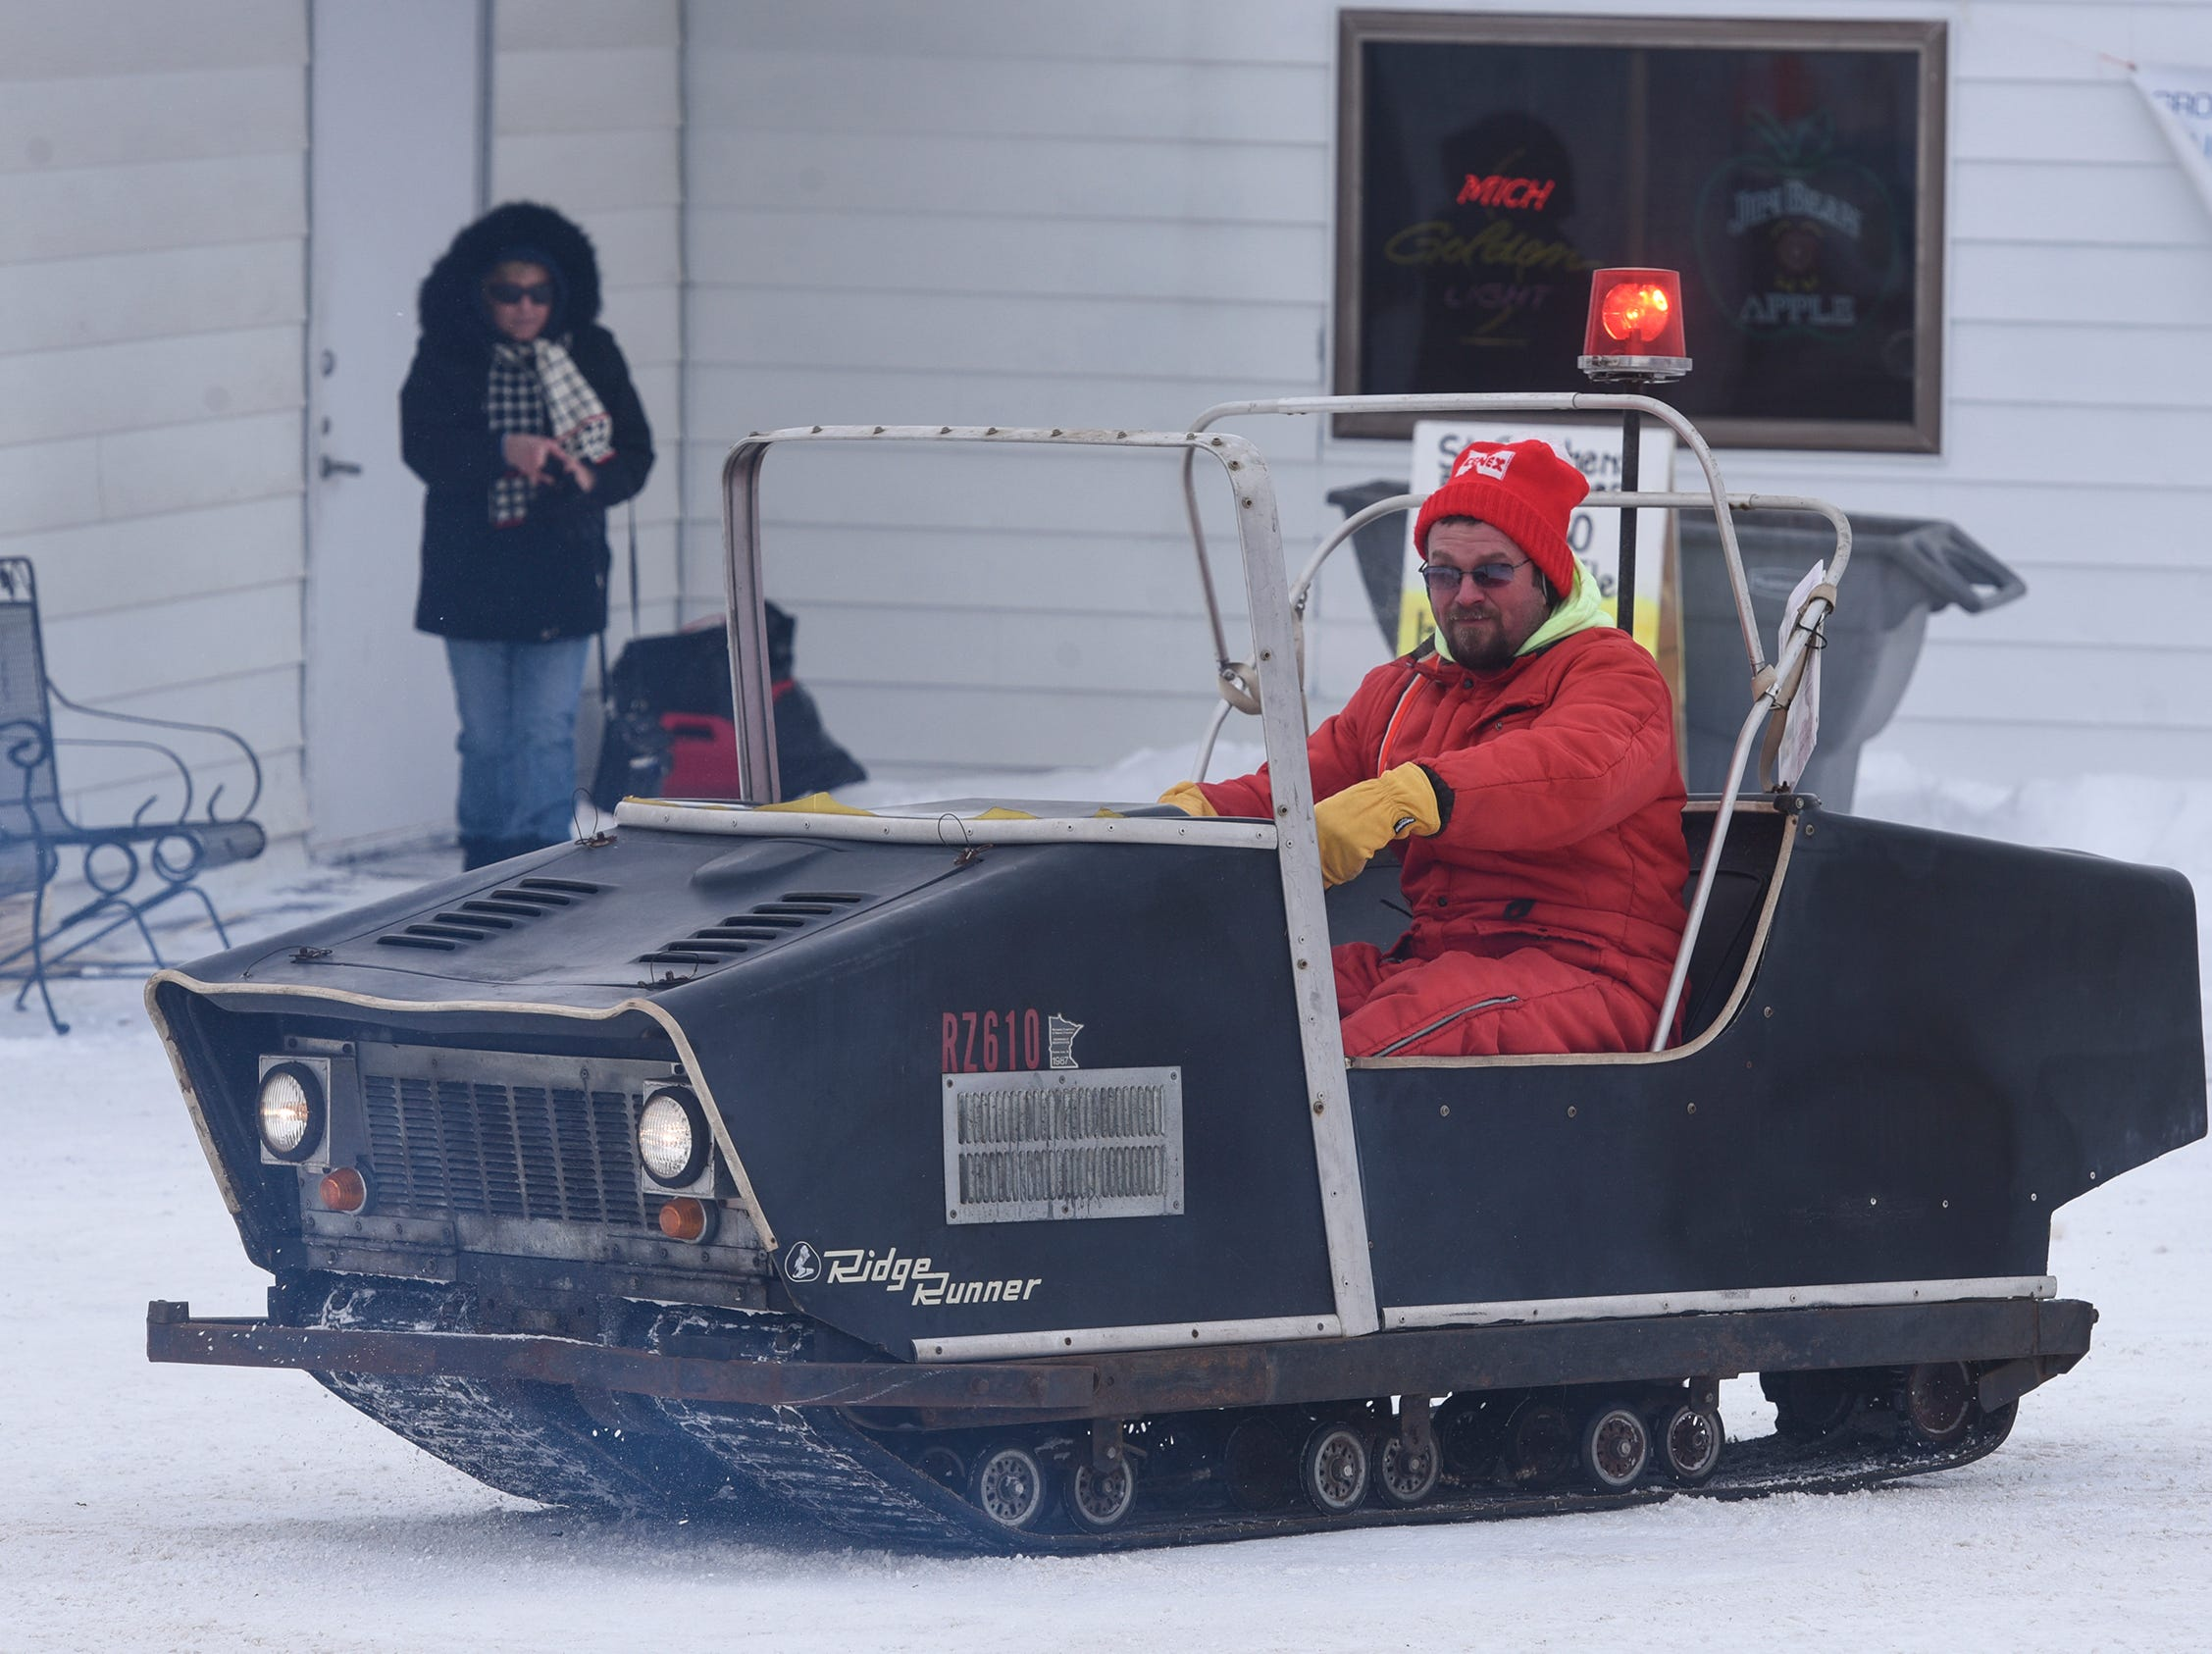 Dale Skroch drives the original snow grooming machine of the St. Stephen River Runners Saturday, Feb. 9, during the club's 50th Anniversary Celebration in St. Stephen.